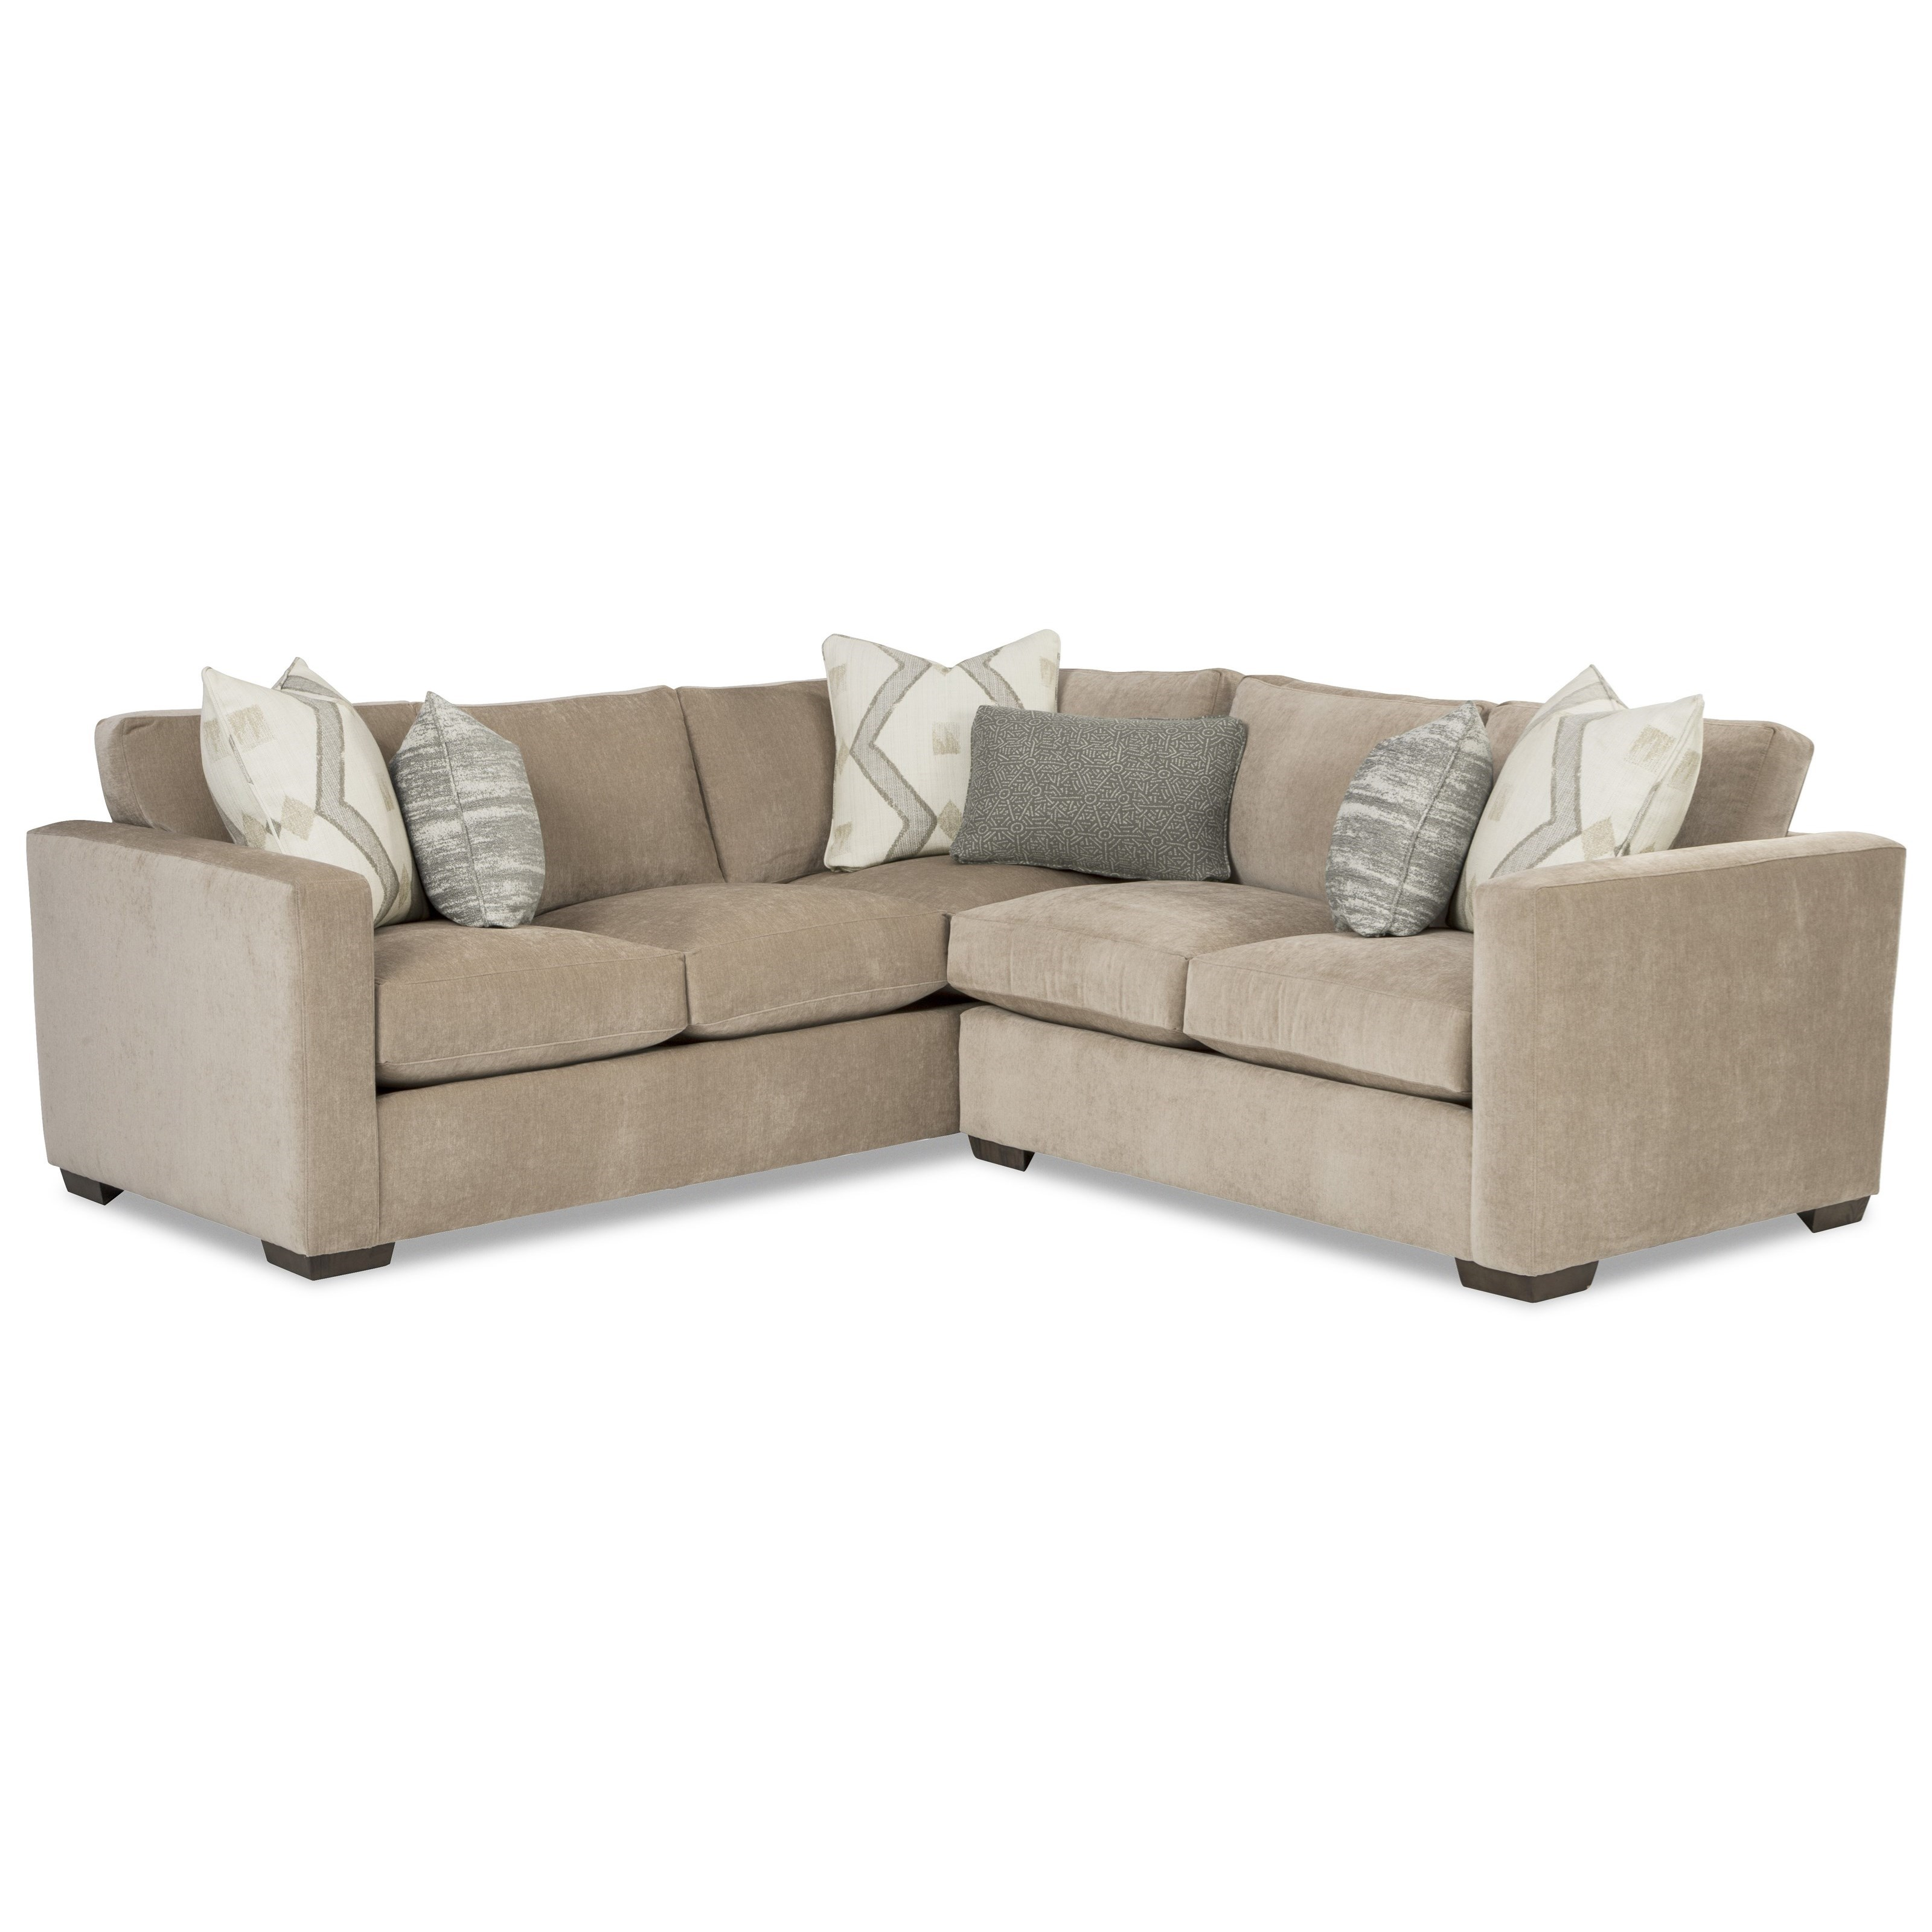 792750BD 2-Piece Sectional with LAF Corner Sofa by Craftmaster at Prime Brothers Furniture